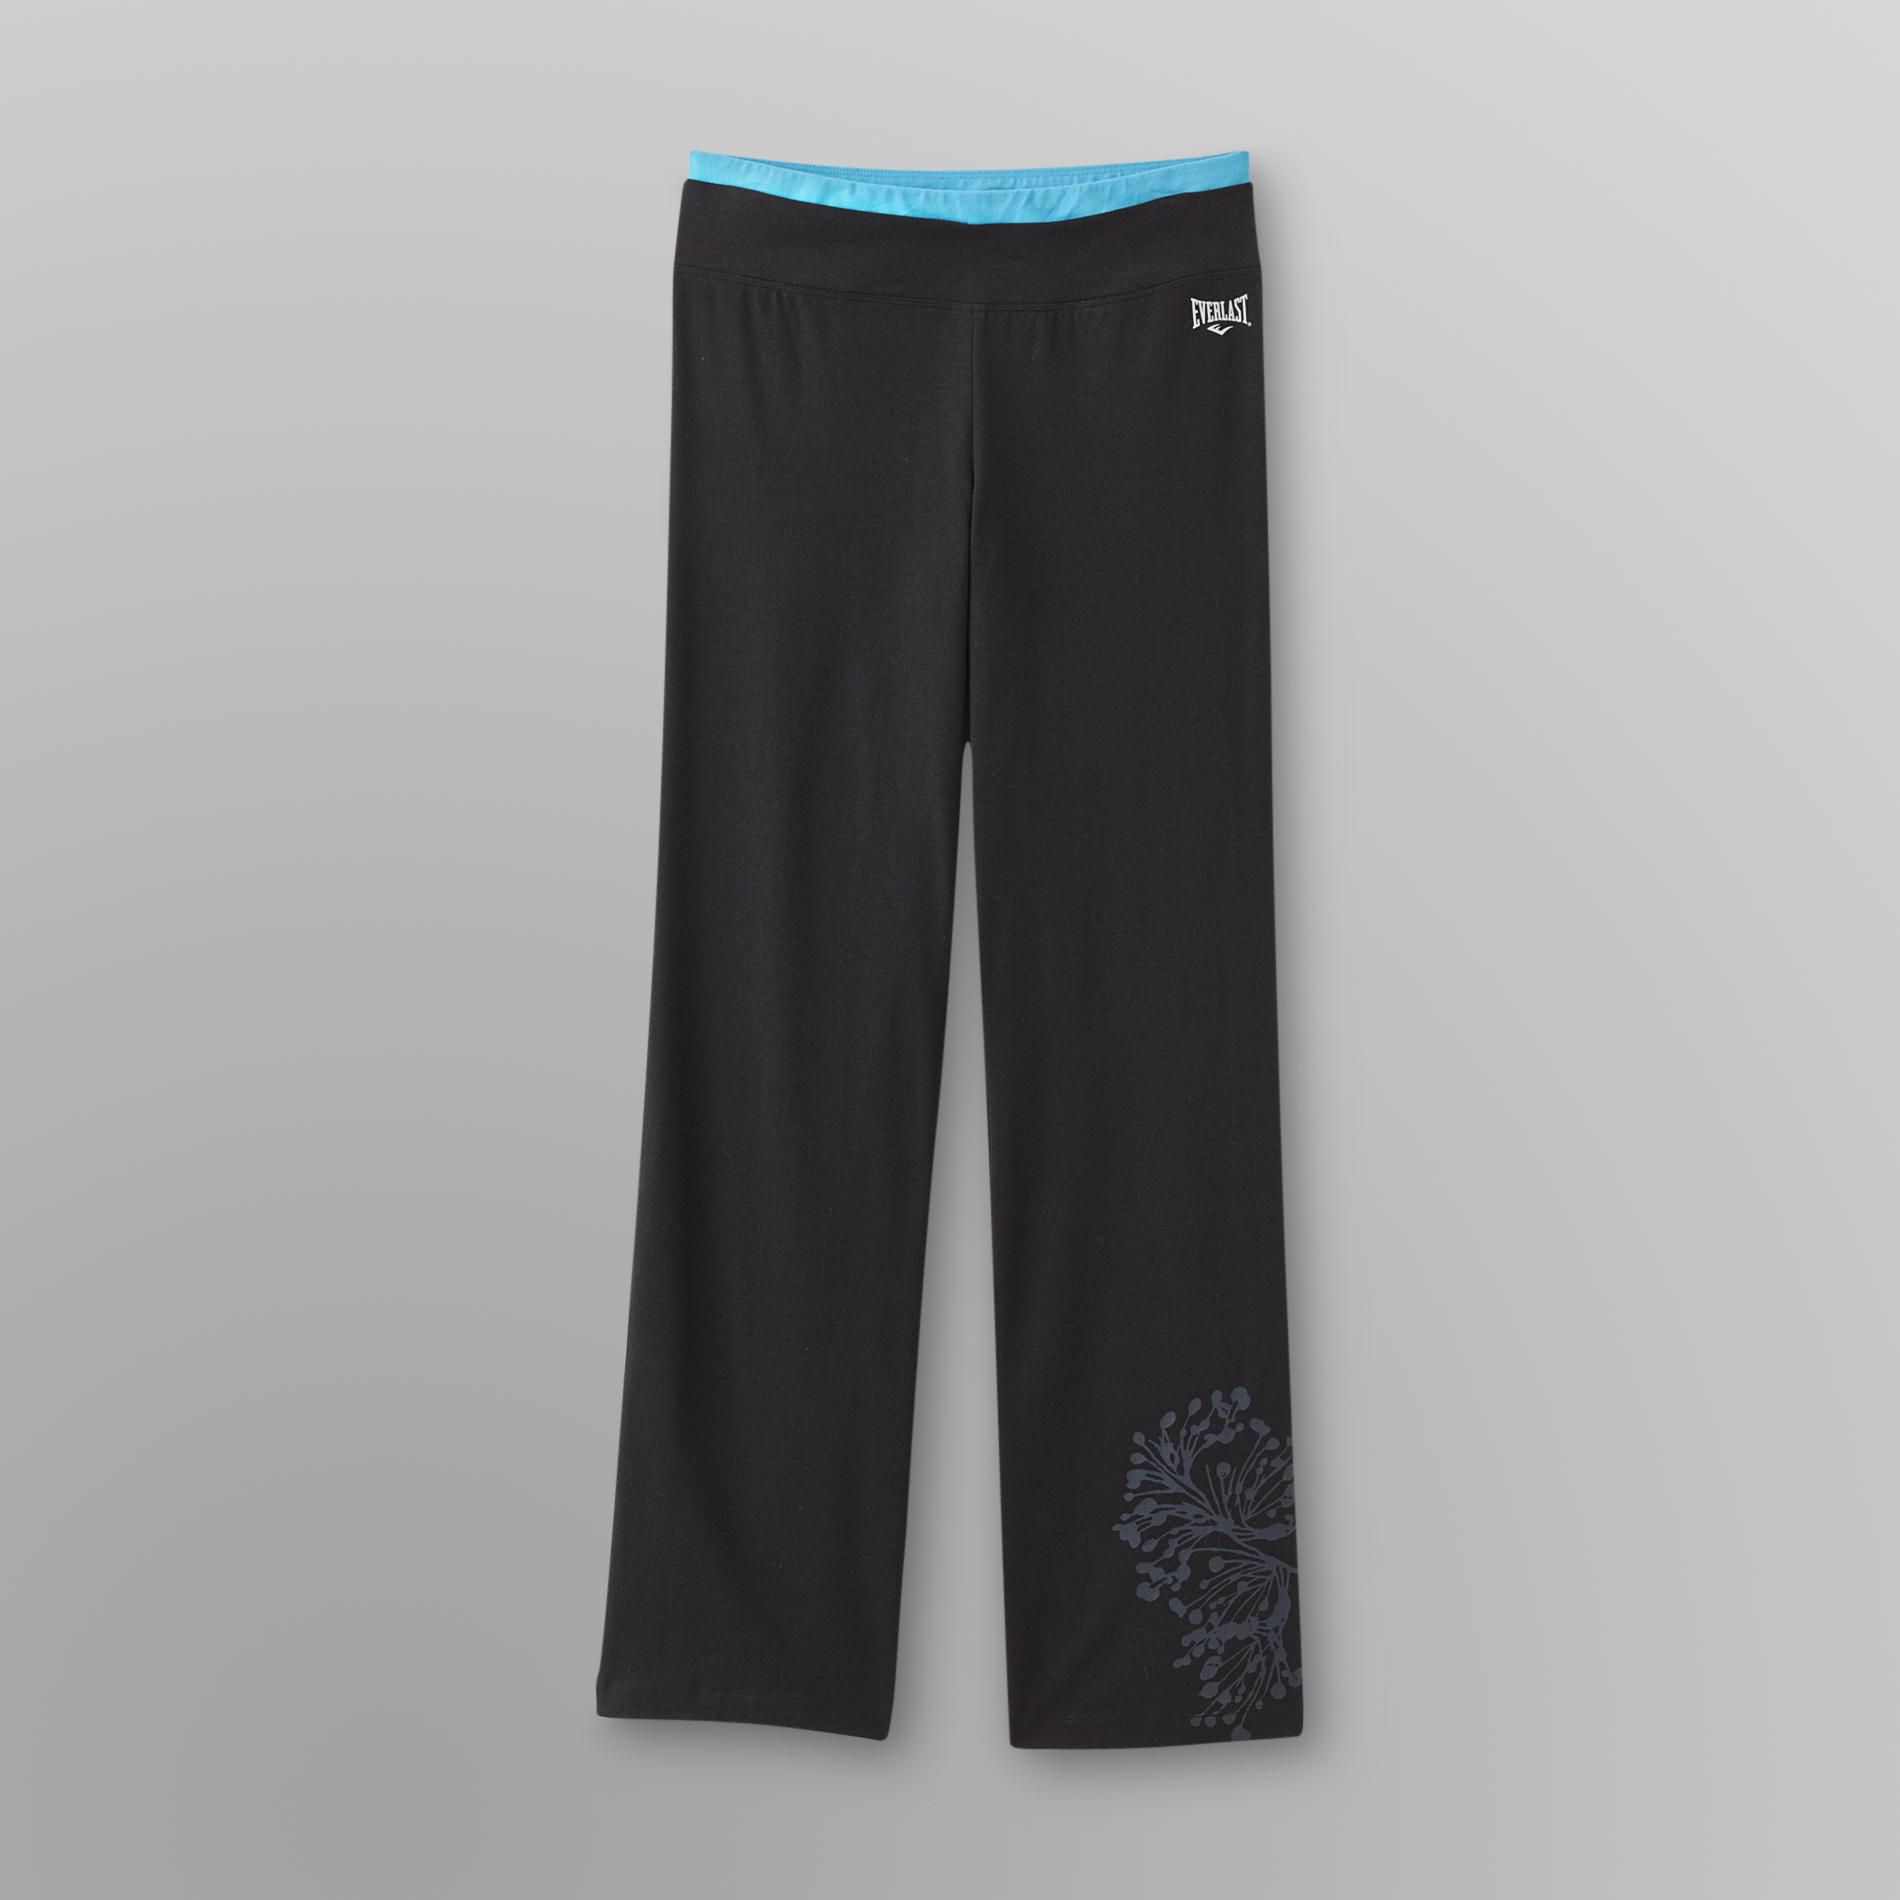 Everlast® Women's Athletic Pants at Sears.com